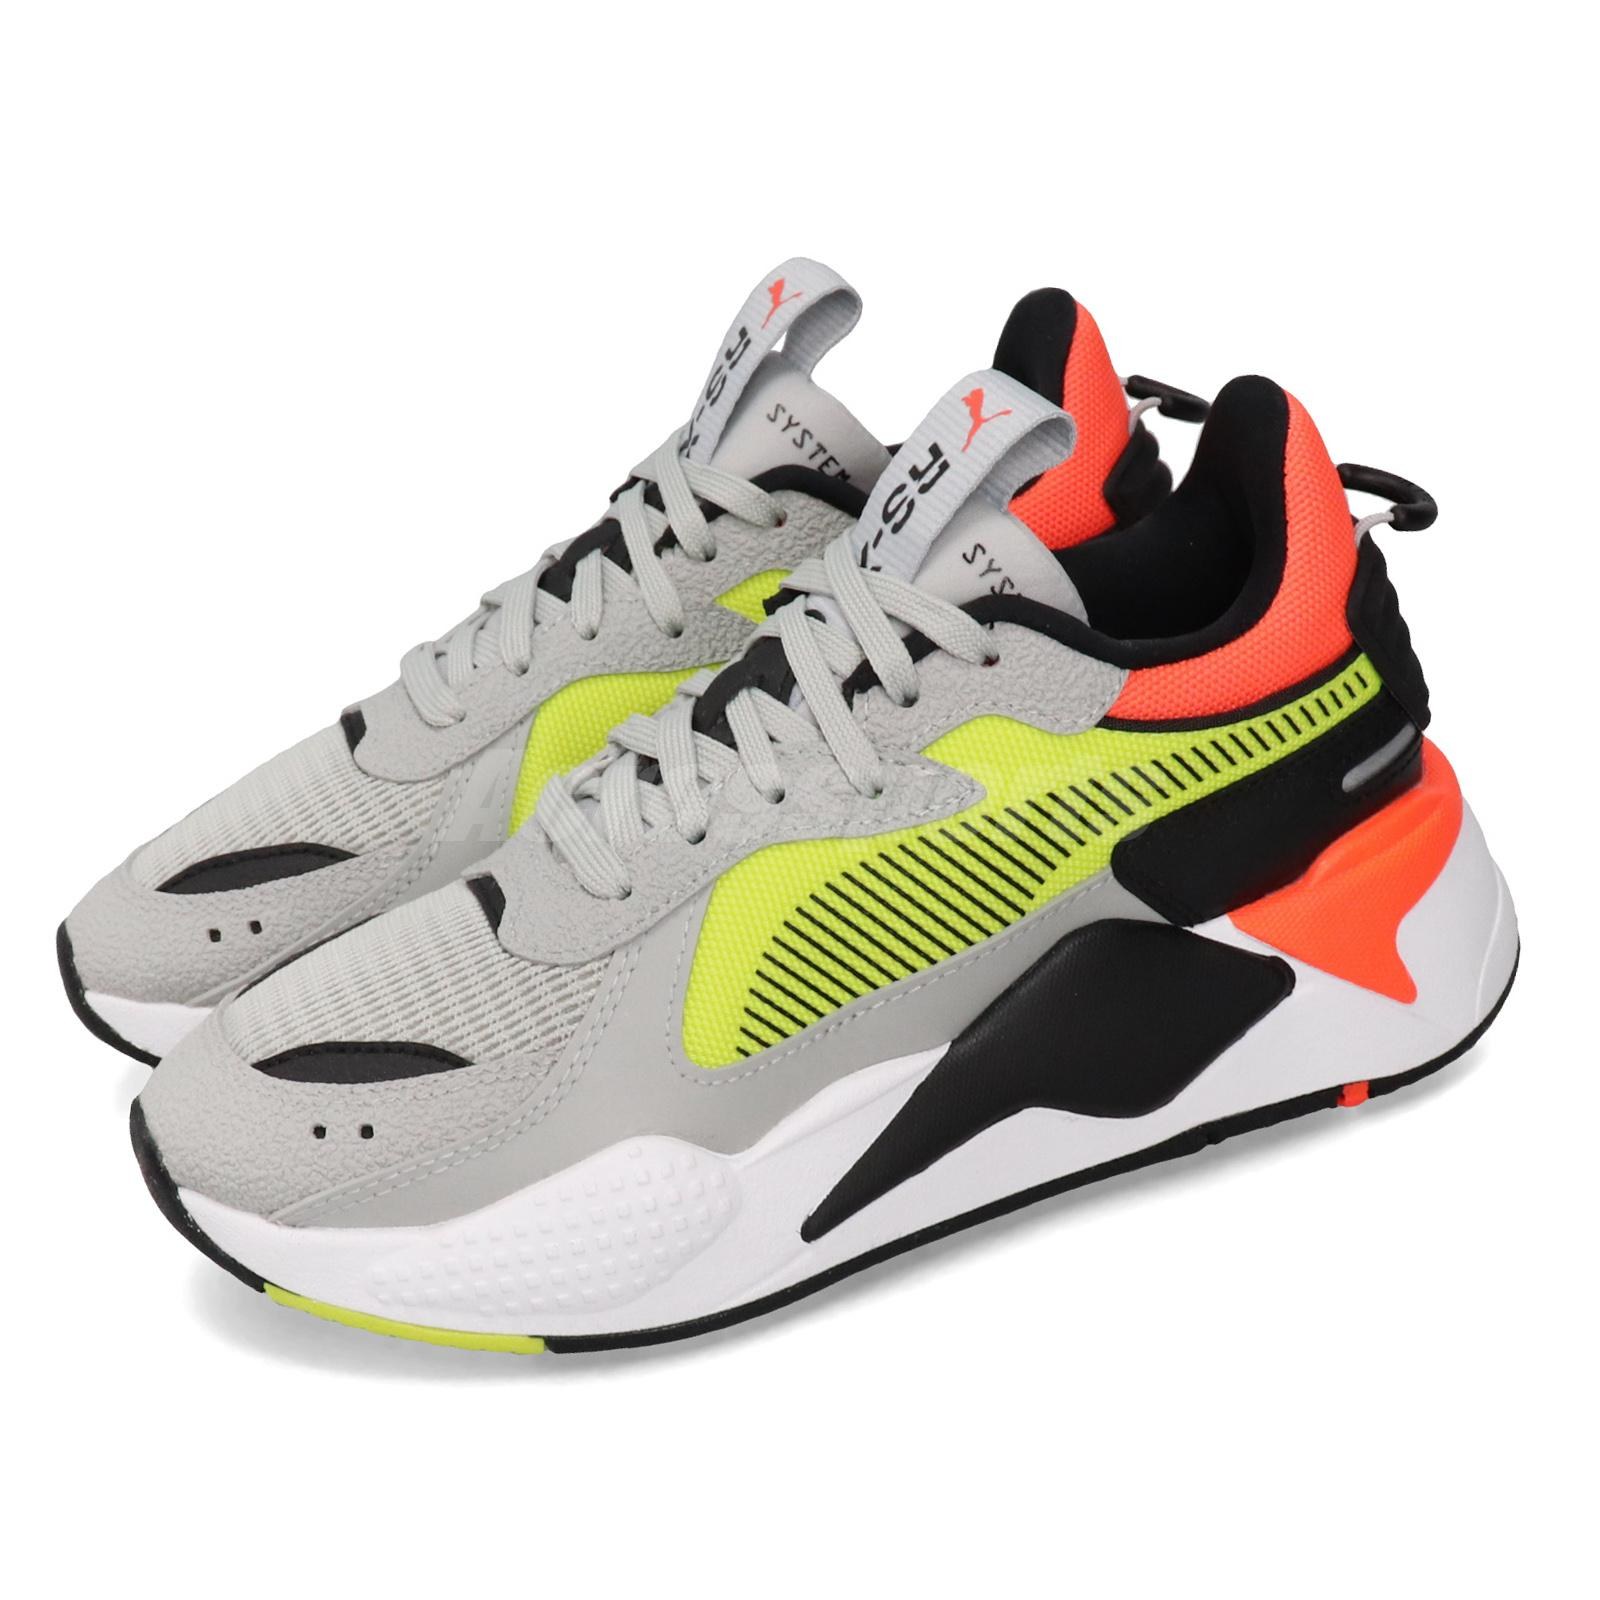 Copiar Perfecto con las manos en la masa  Puma RS-X Hard Drive Run System Grey Yellow Mens Womens Running Shoes  369818-01 | eBay